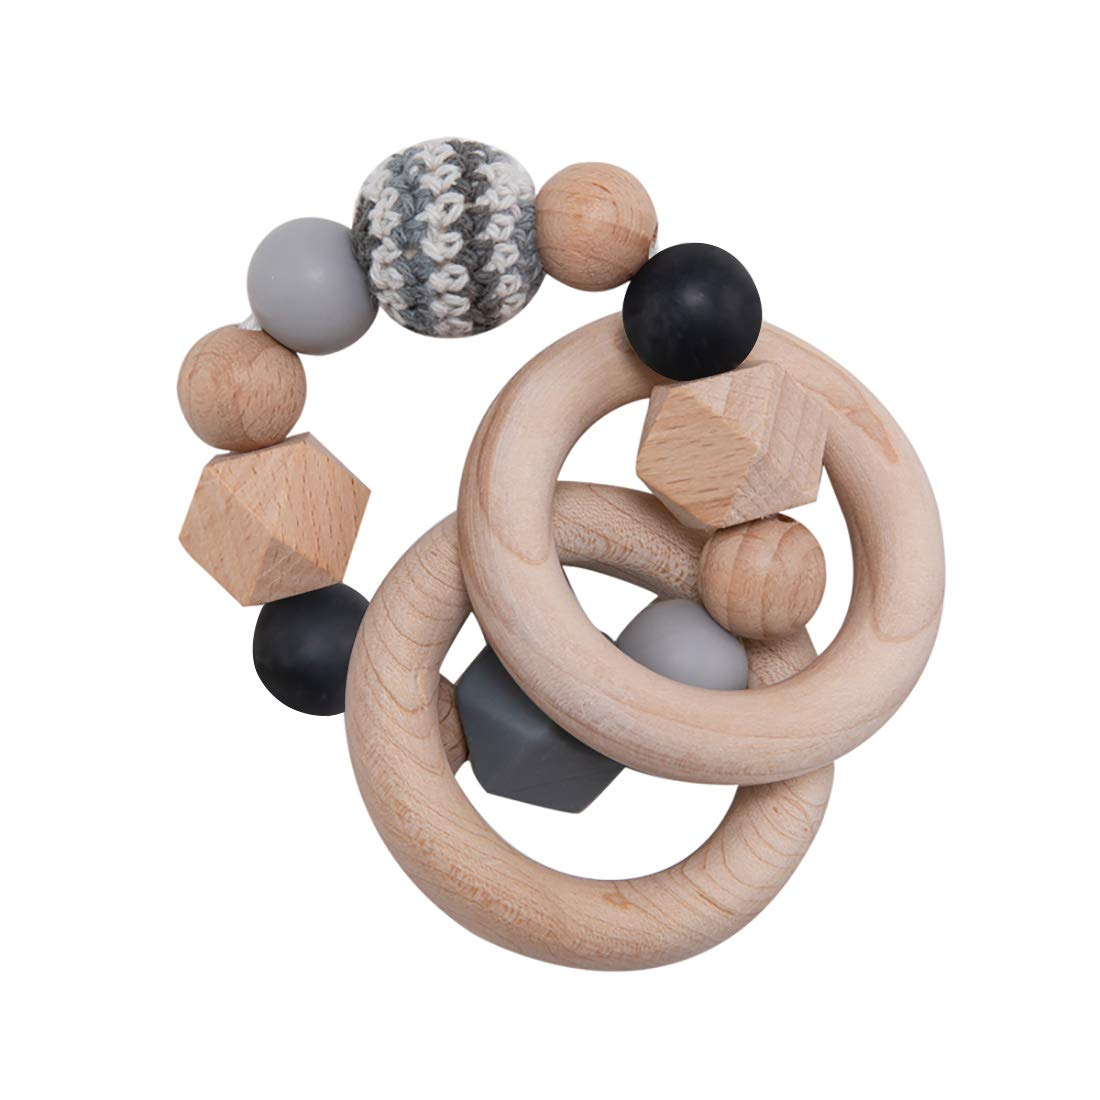 DIY Baby Teether Handmade Crochet Beads Round Wood Teething Beads Nursing Nacklace Bracelet Kit Choose Your Color Case Included